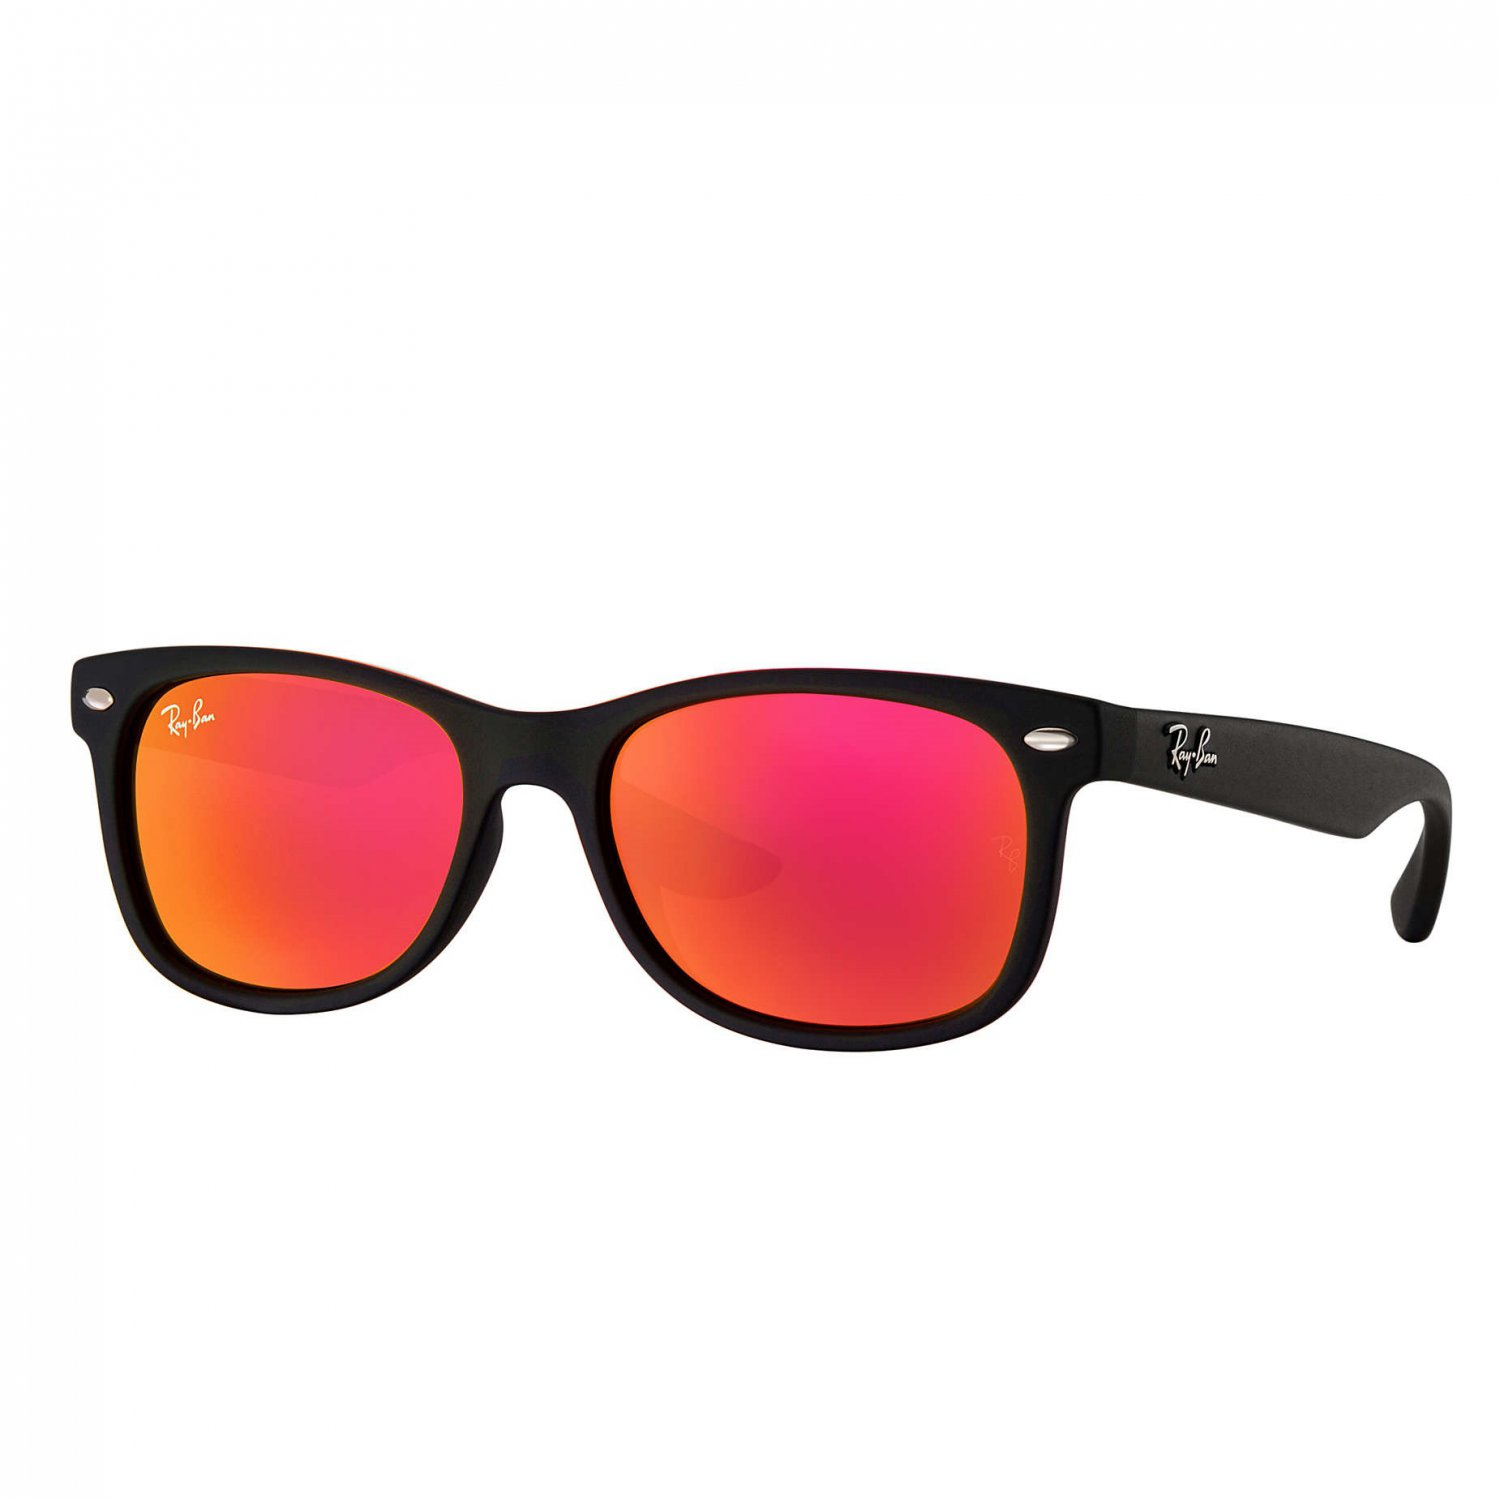 Ray-Ban Jr New Wayfarer Sunglasses - Matte Black/Red Flash - 48mm